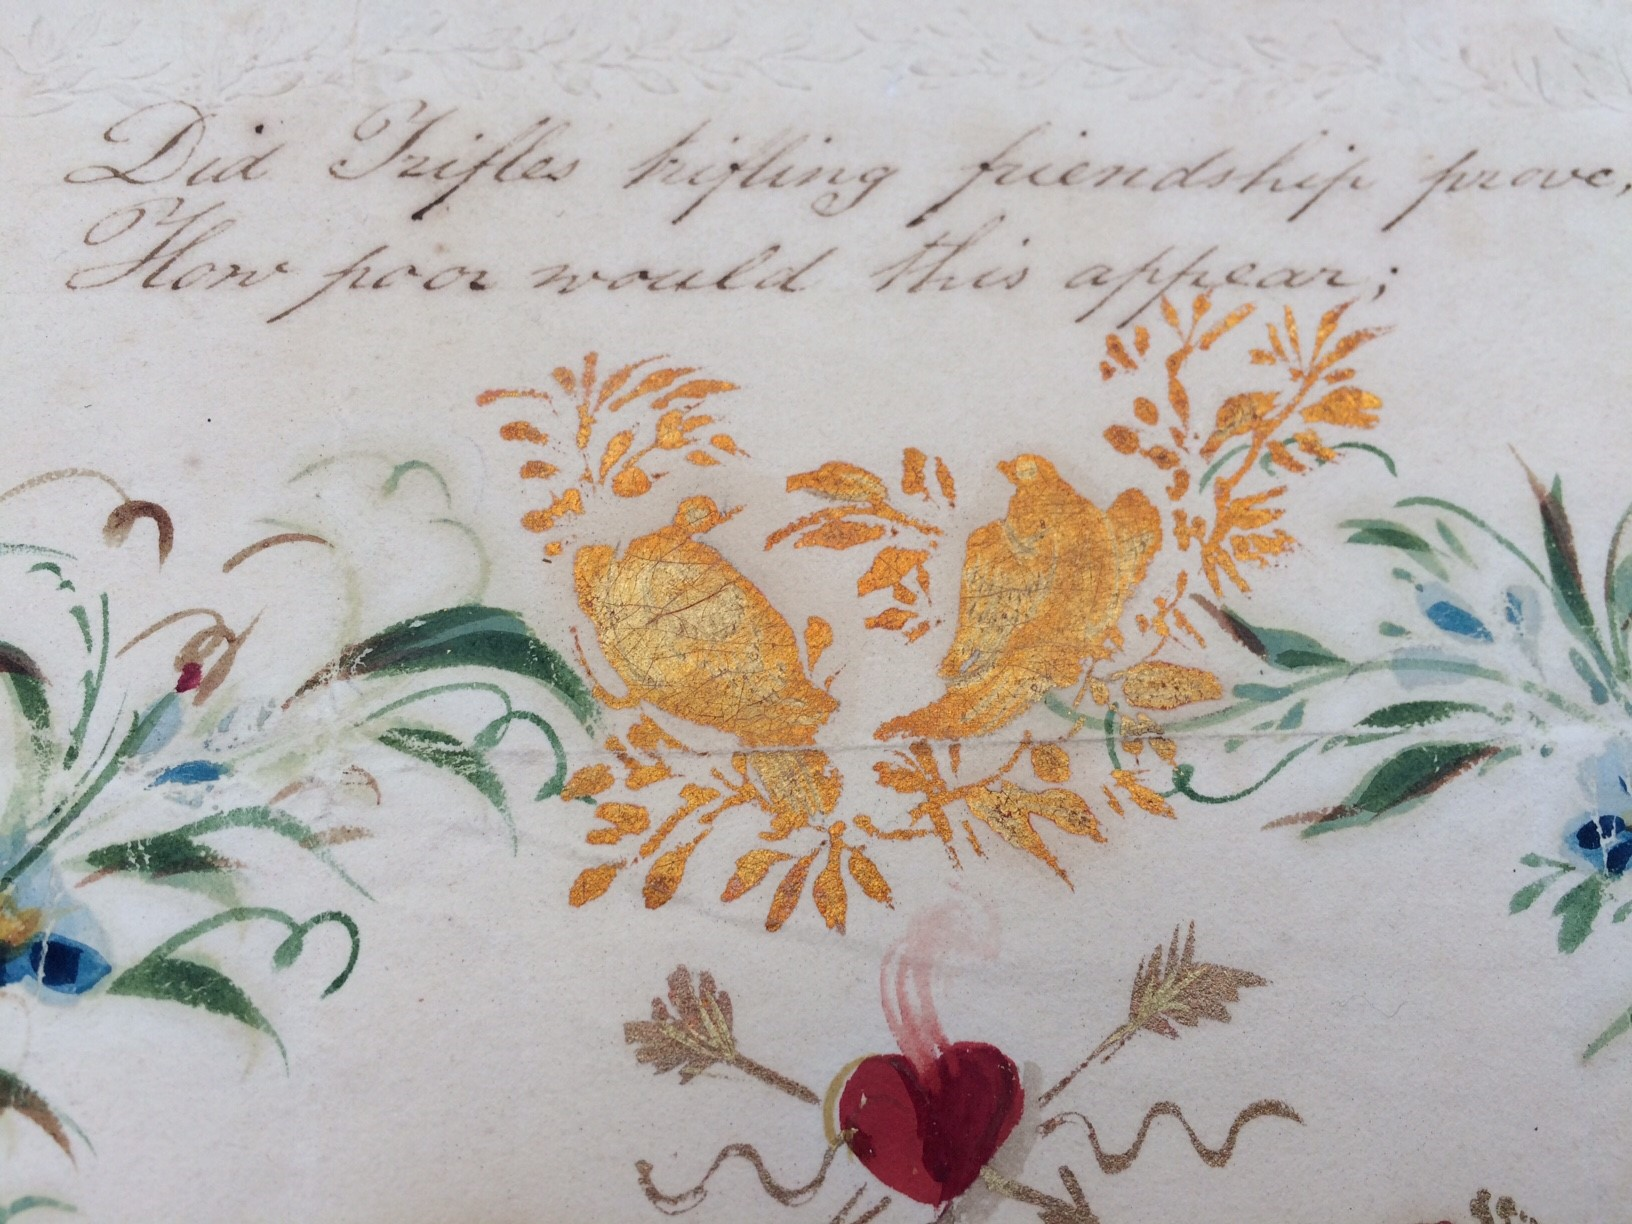 Above: A close up of part of the Valentine letter.